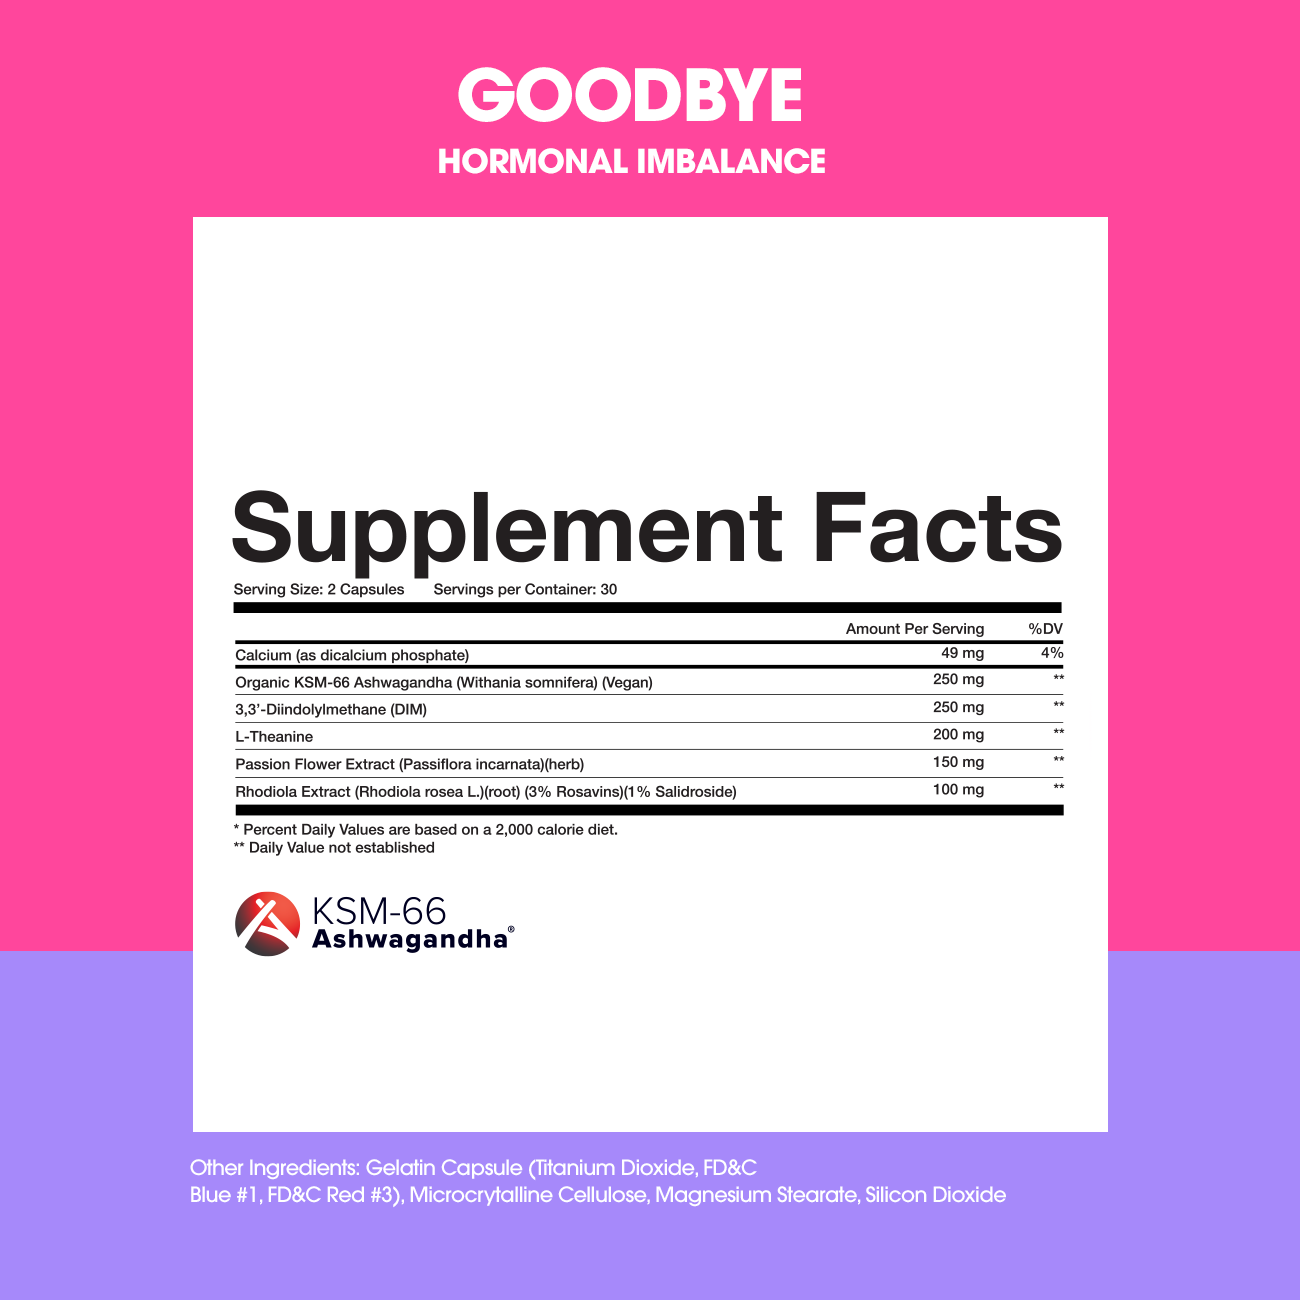 GOODBYE Ingredients & Supplement Facts Panel